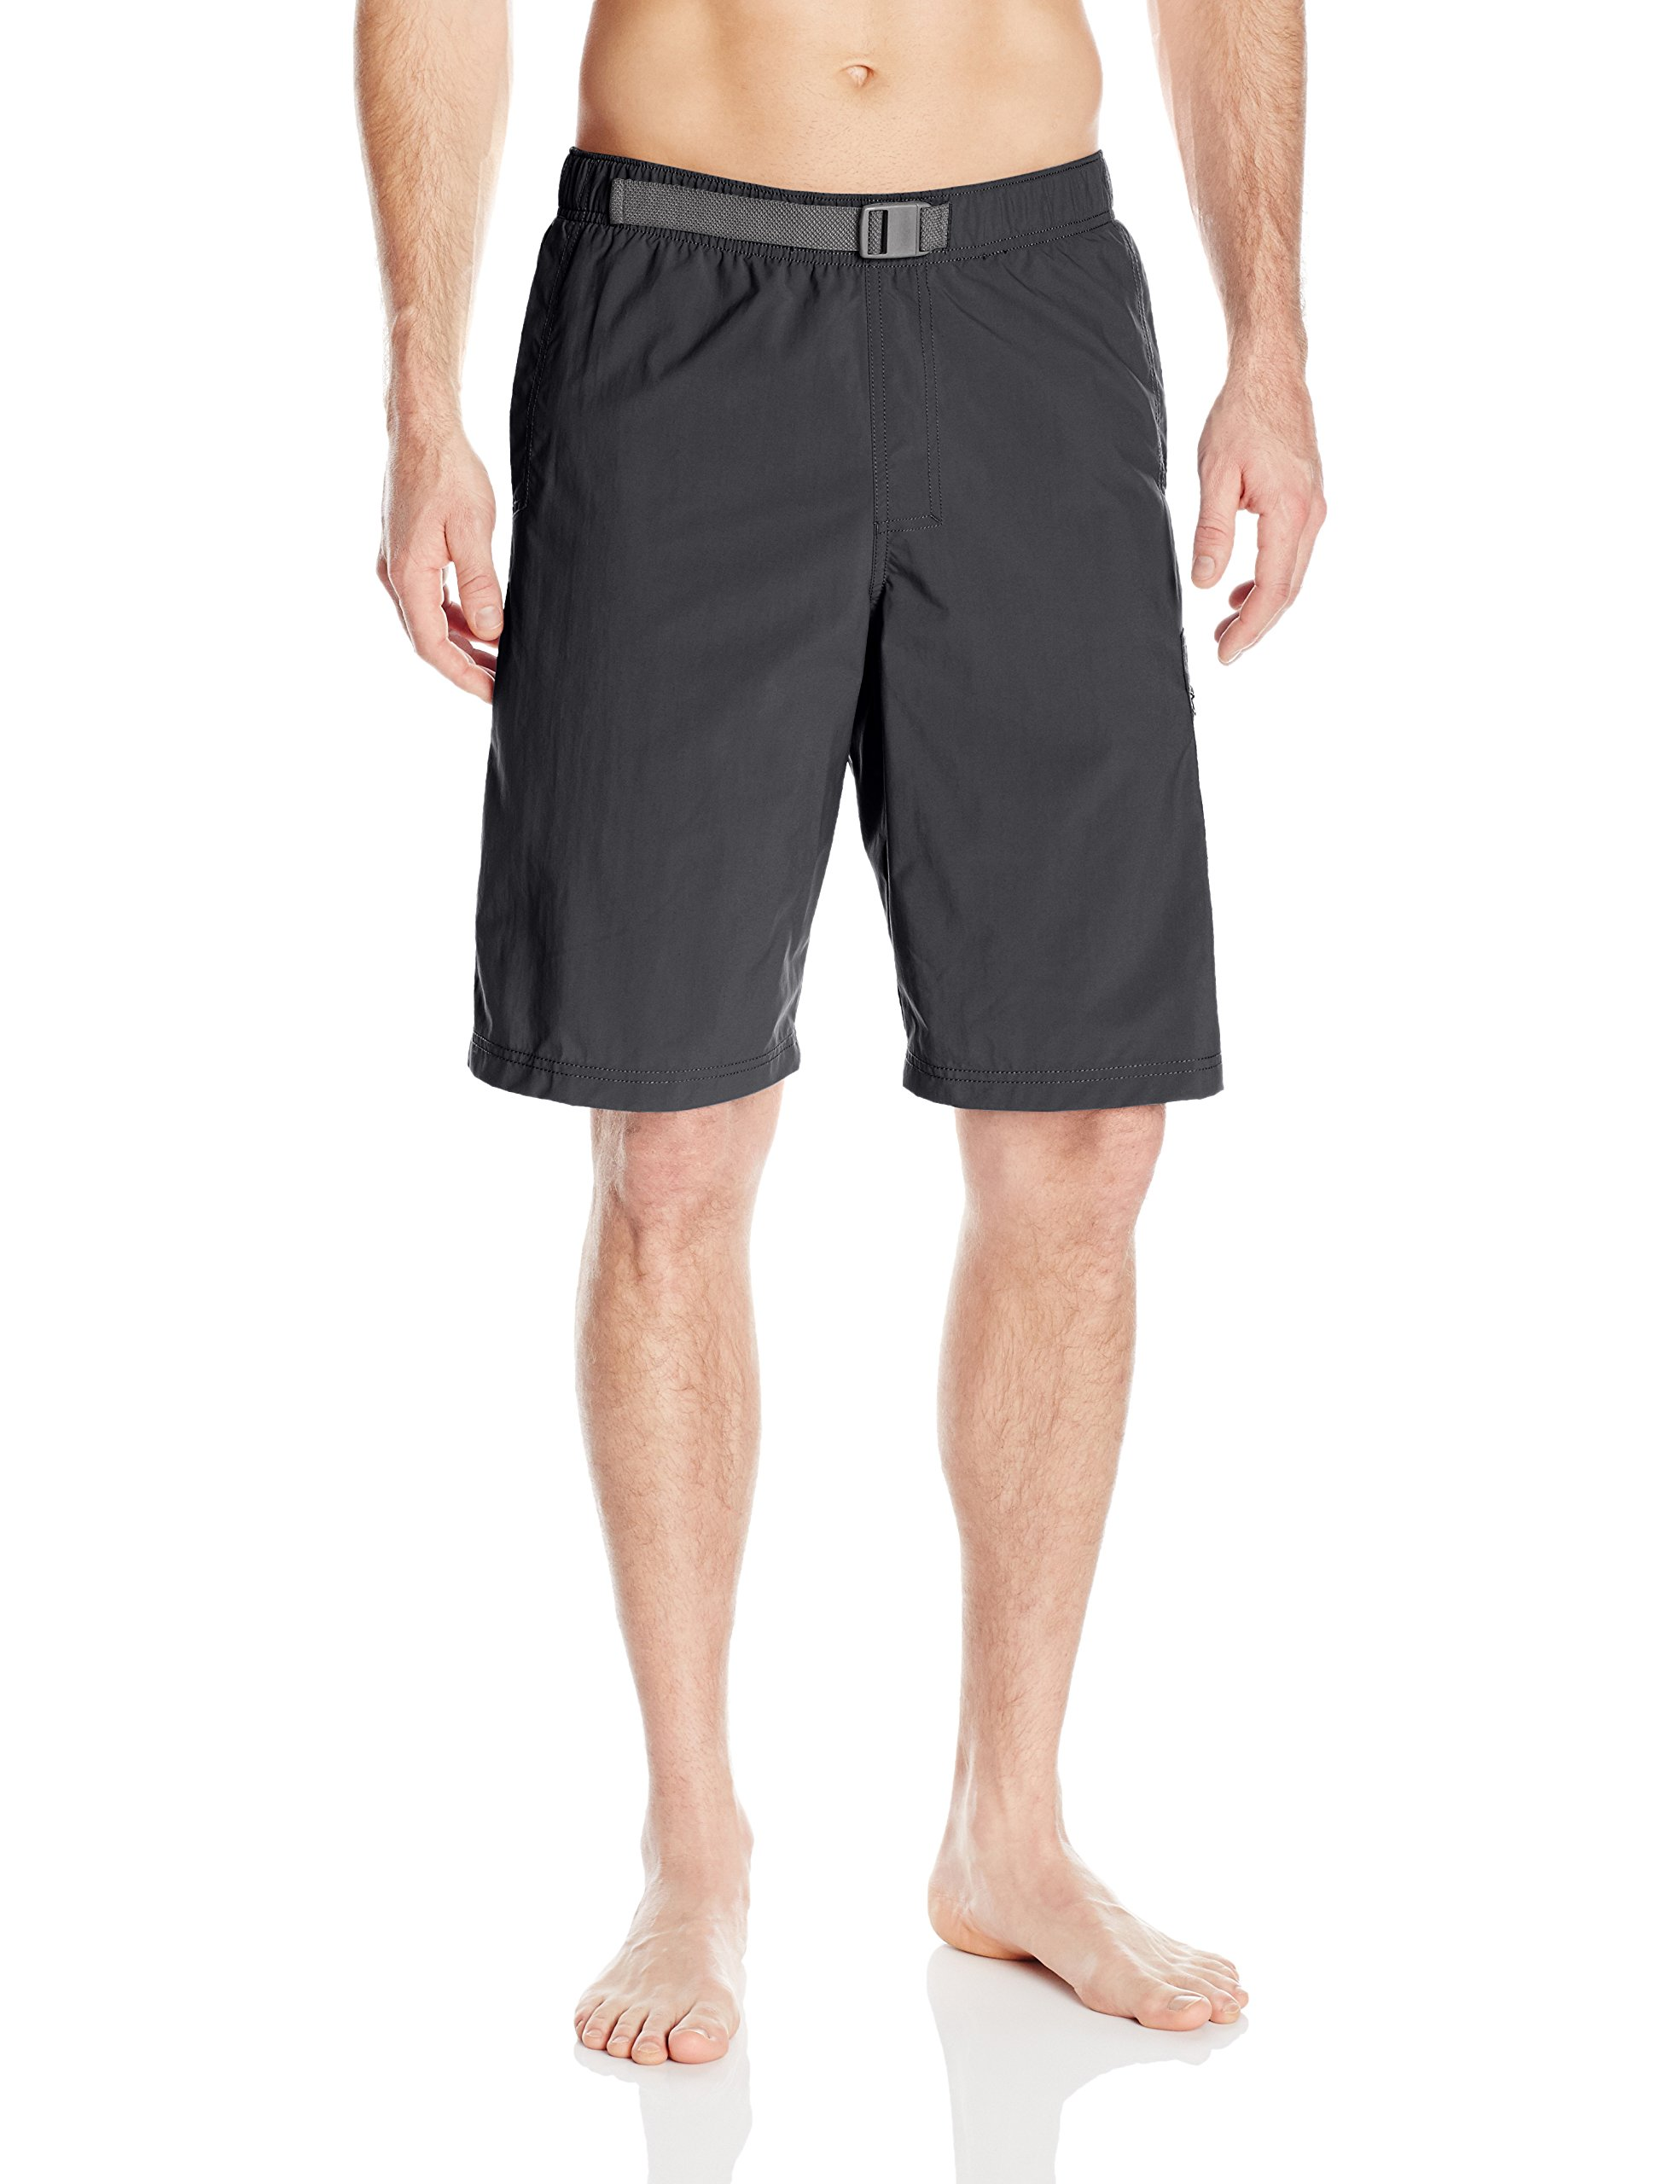 Columbia Men's Palmerstone Peak Swim Short, Black, X-Large/11